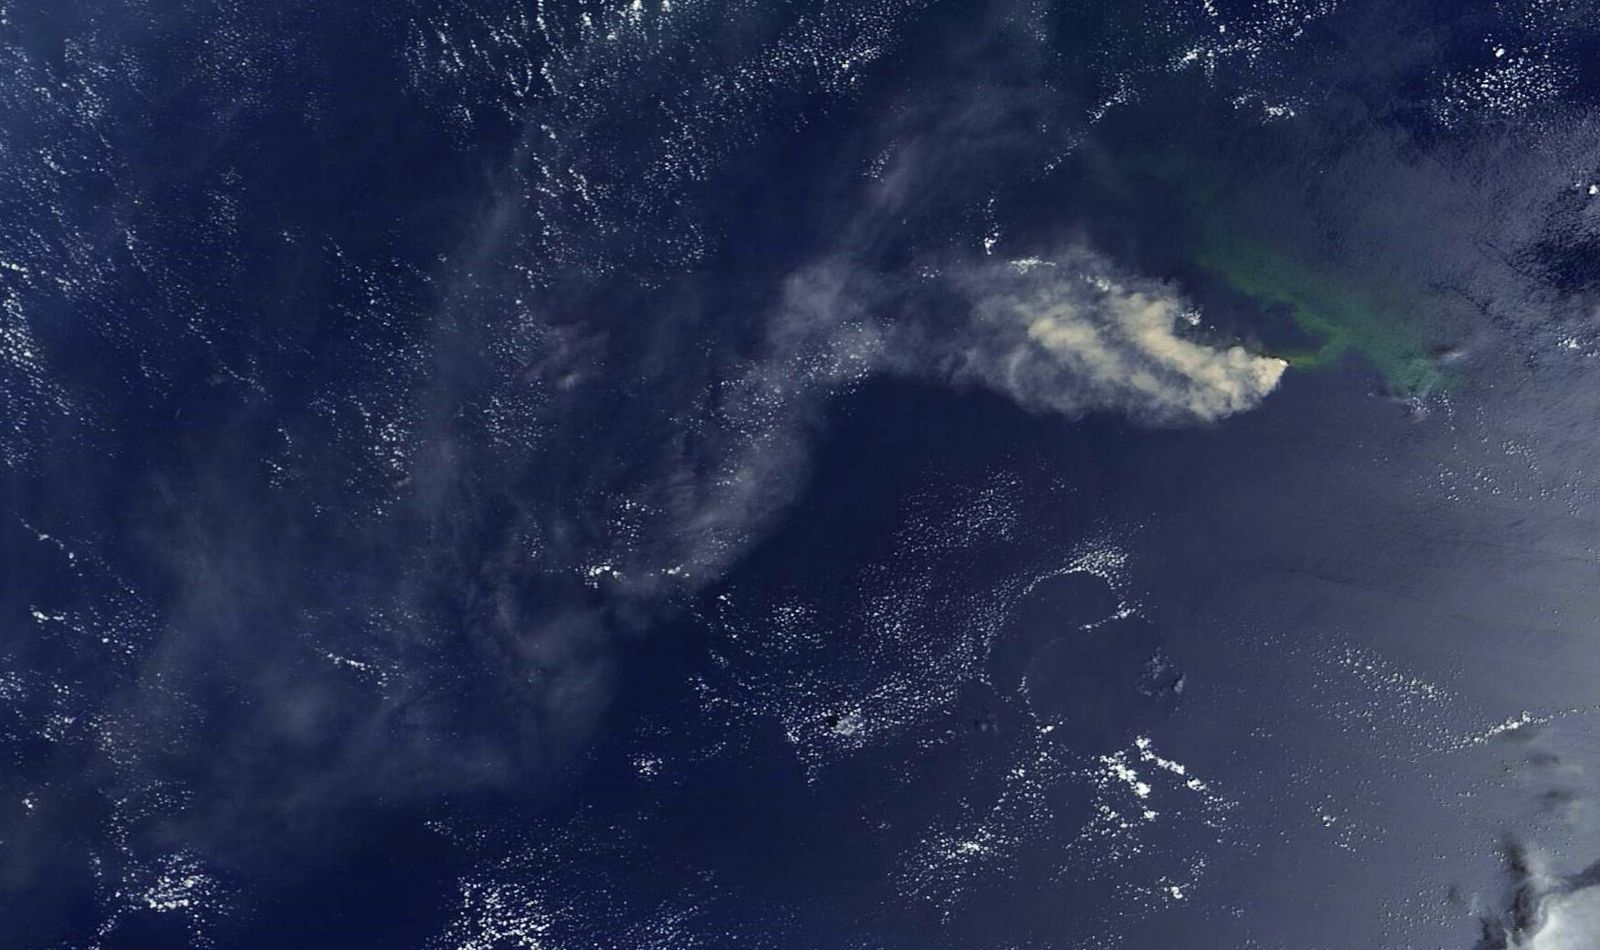 Nishinoshima - 13.08.2020 - ash and gas plumes, and the discolored water area - Doc. Nasa Eosdos Worldview